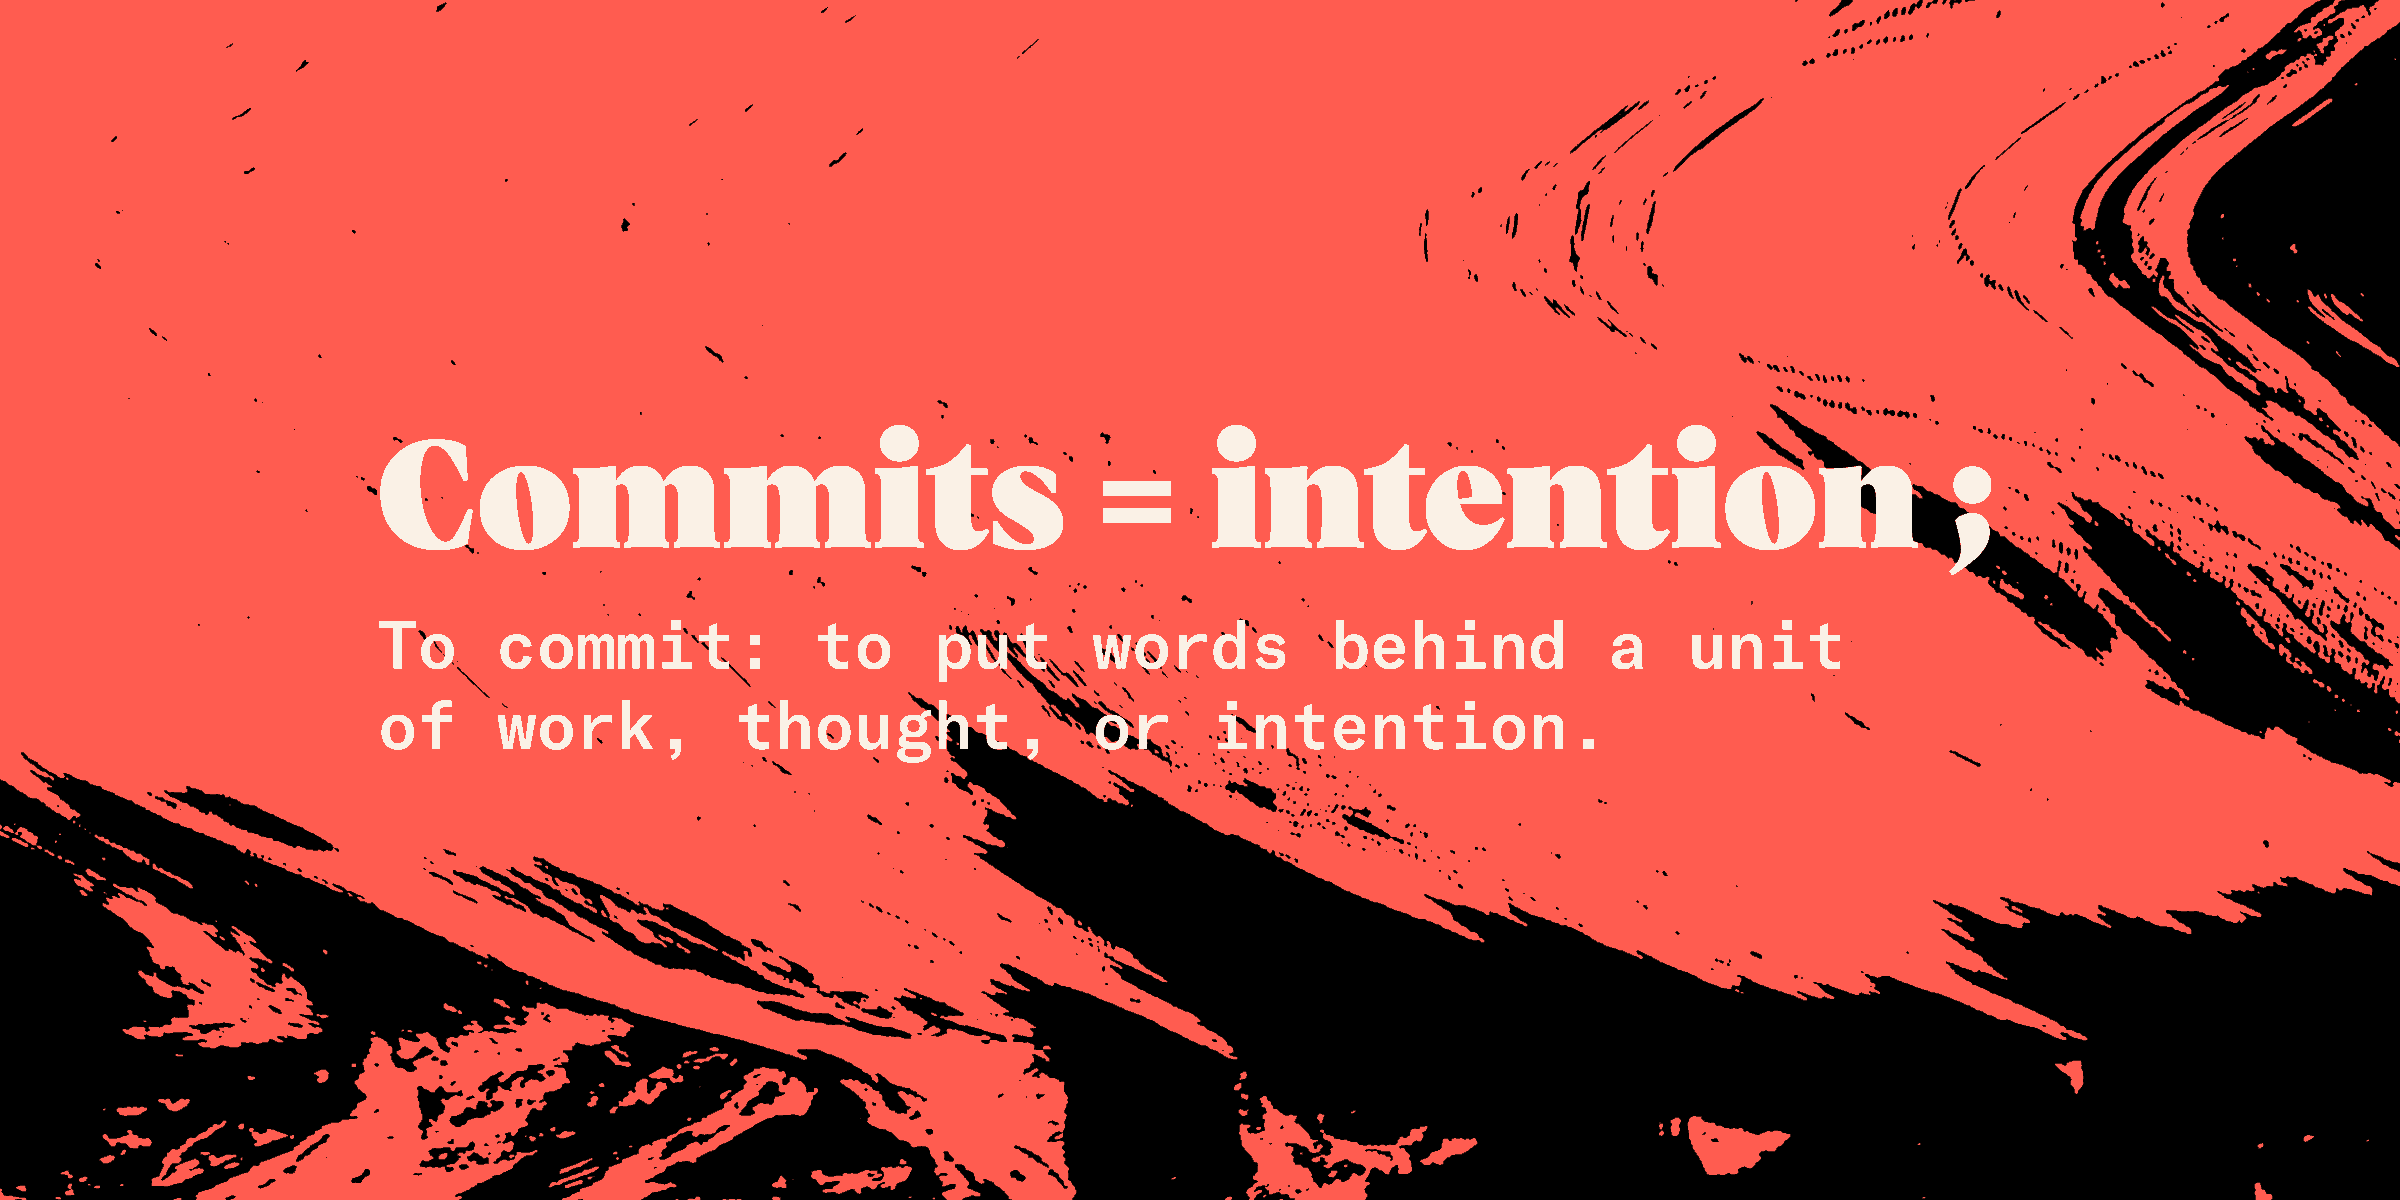 Commits = intention